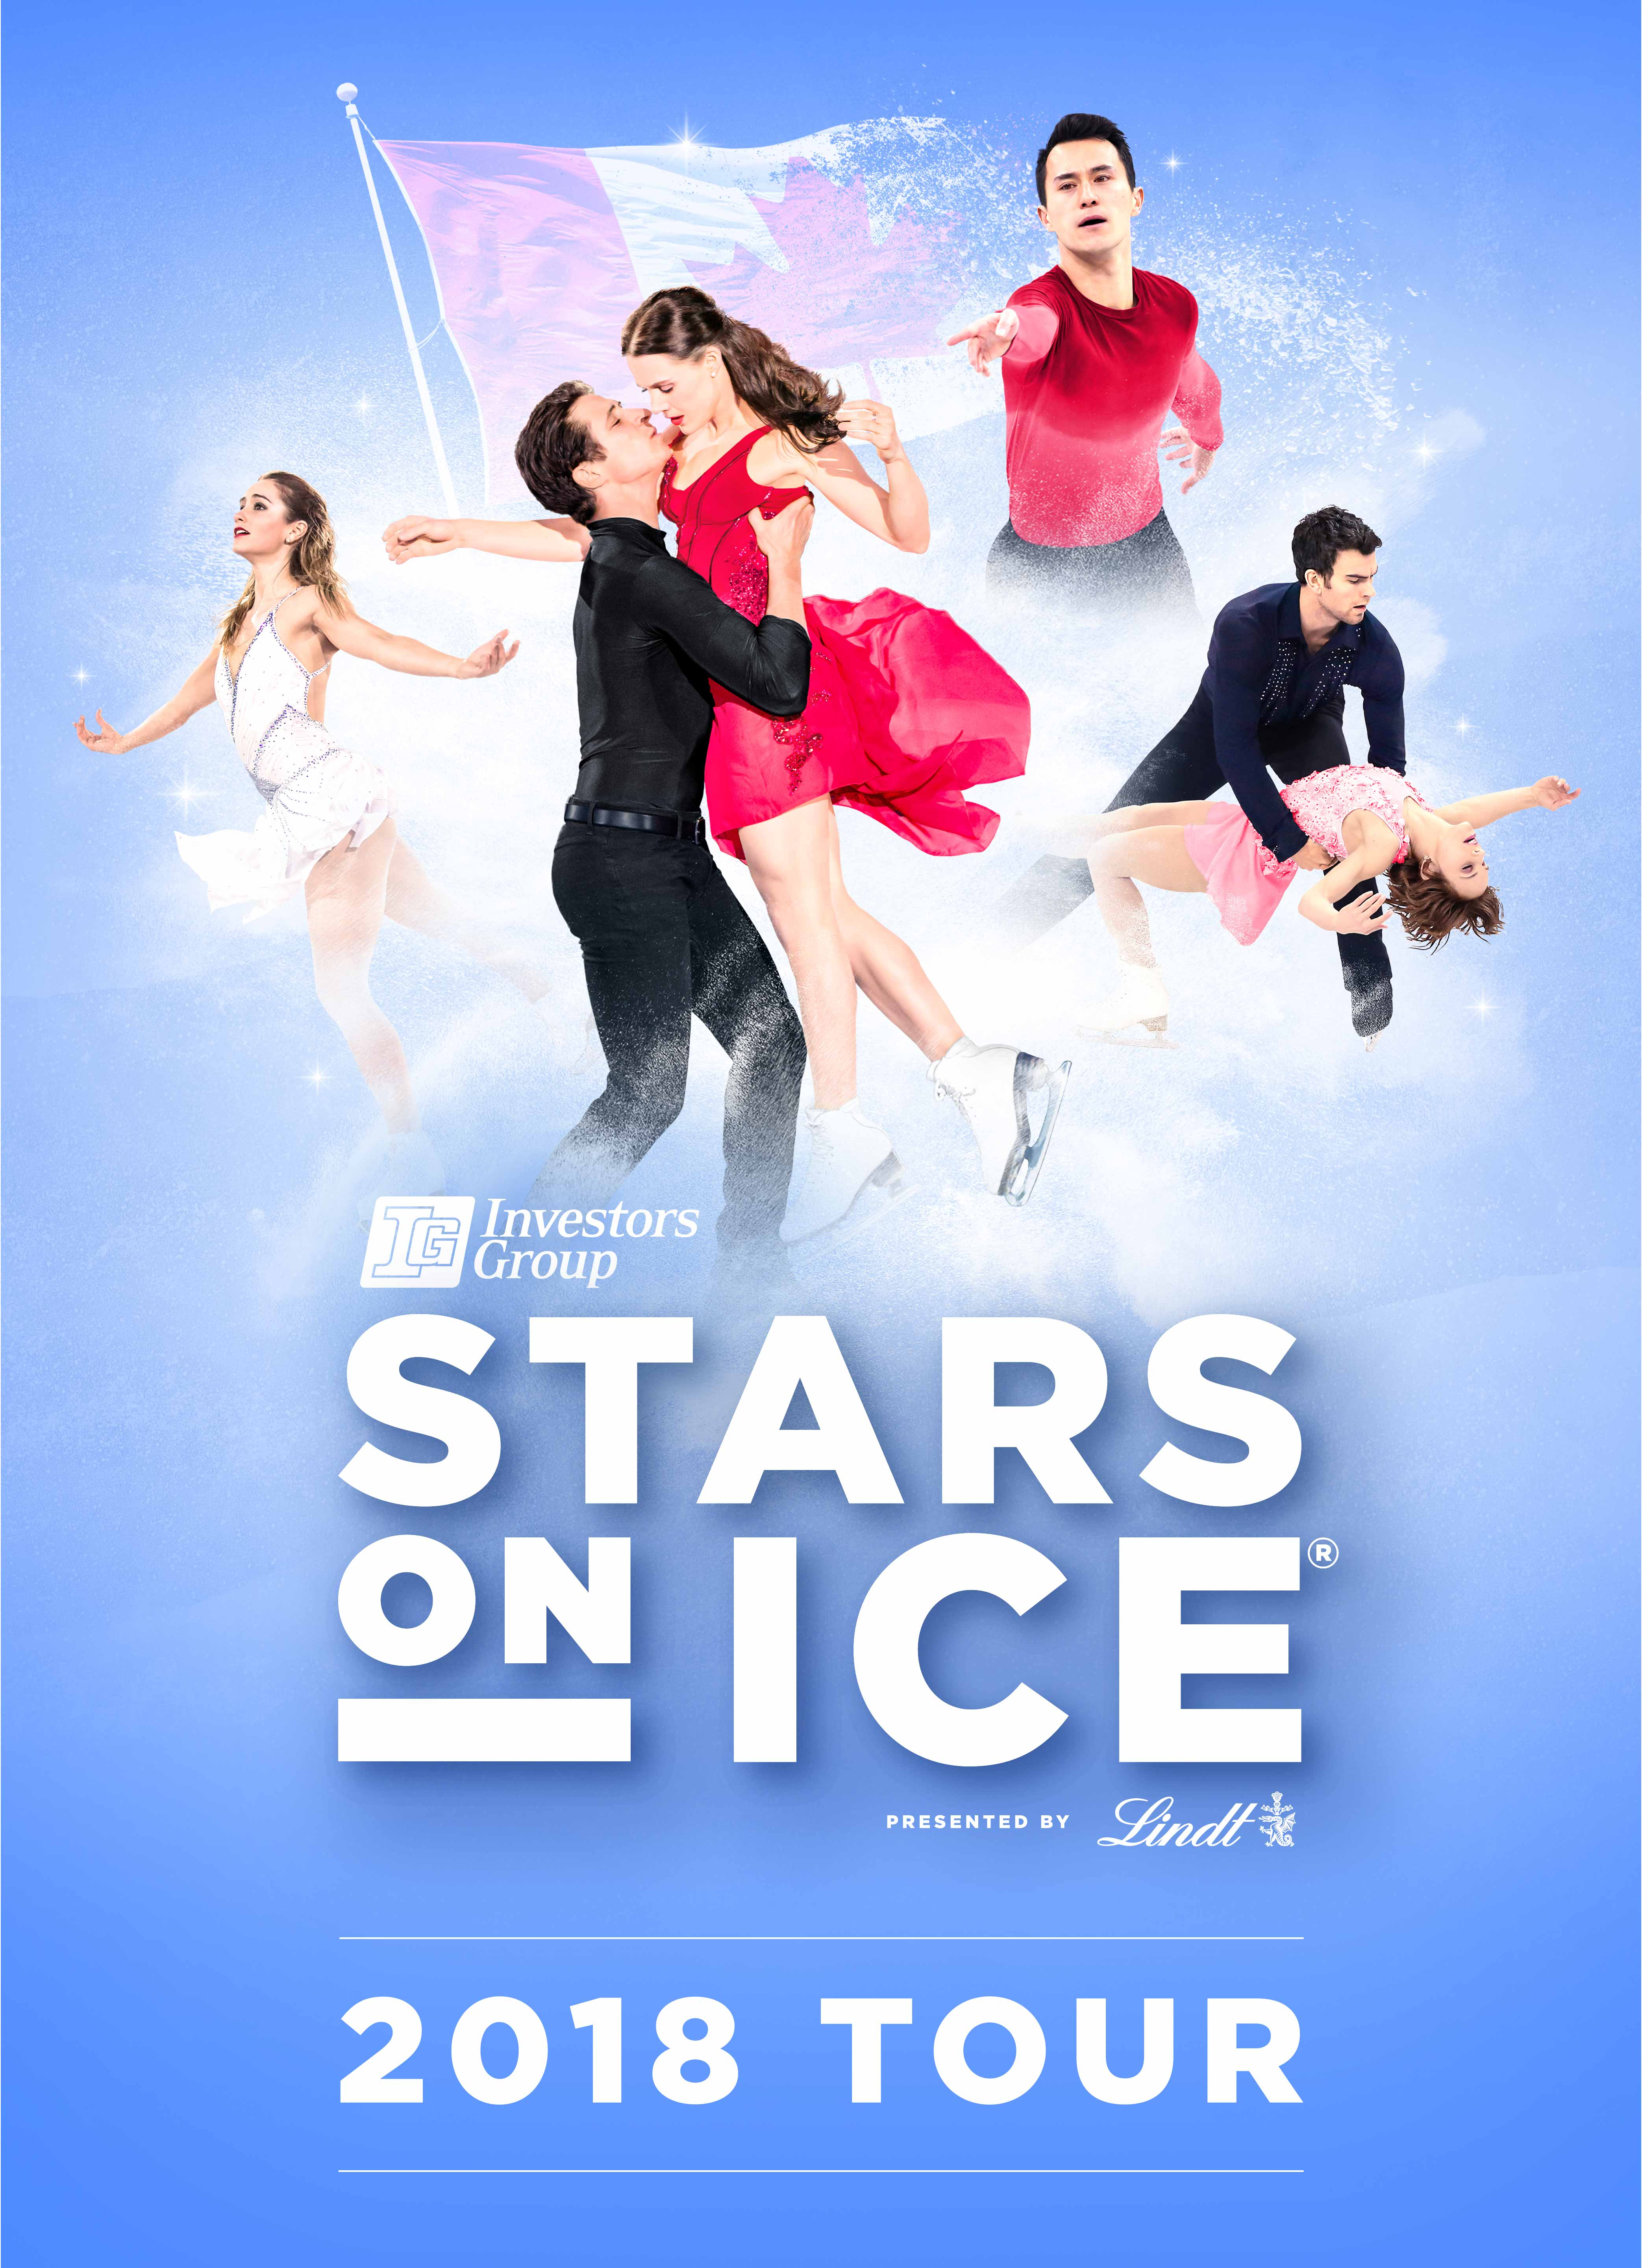 Stars on Ice Vertical Graphic - 2018